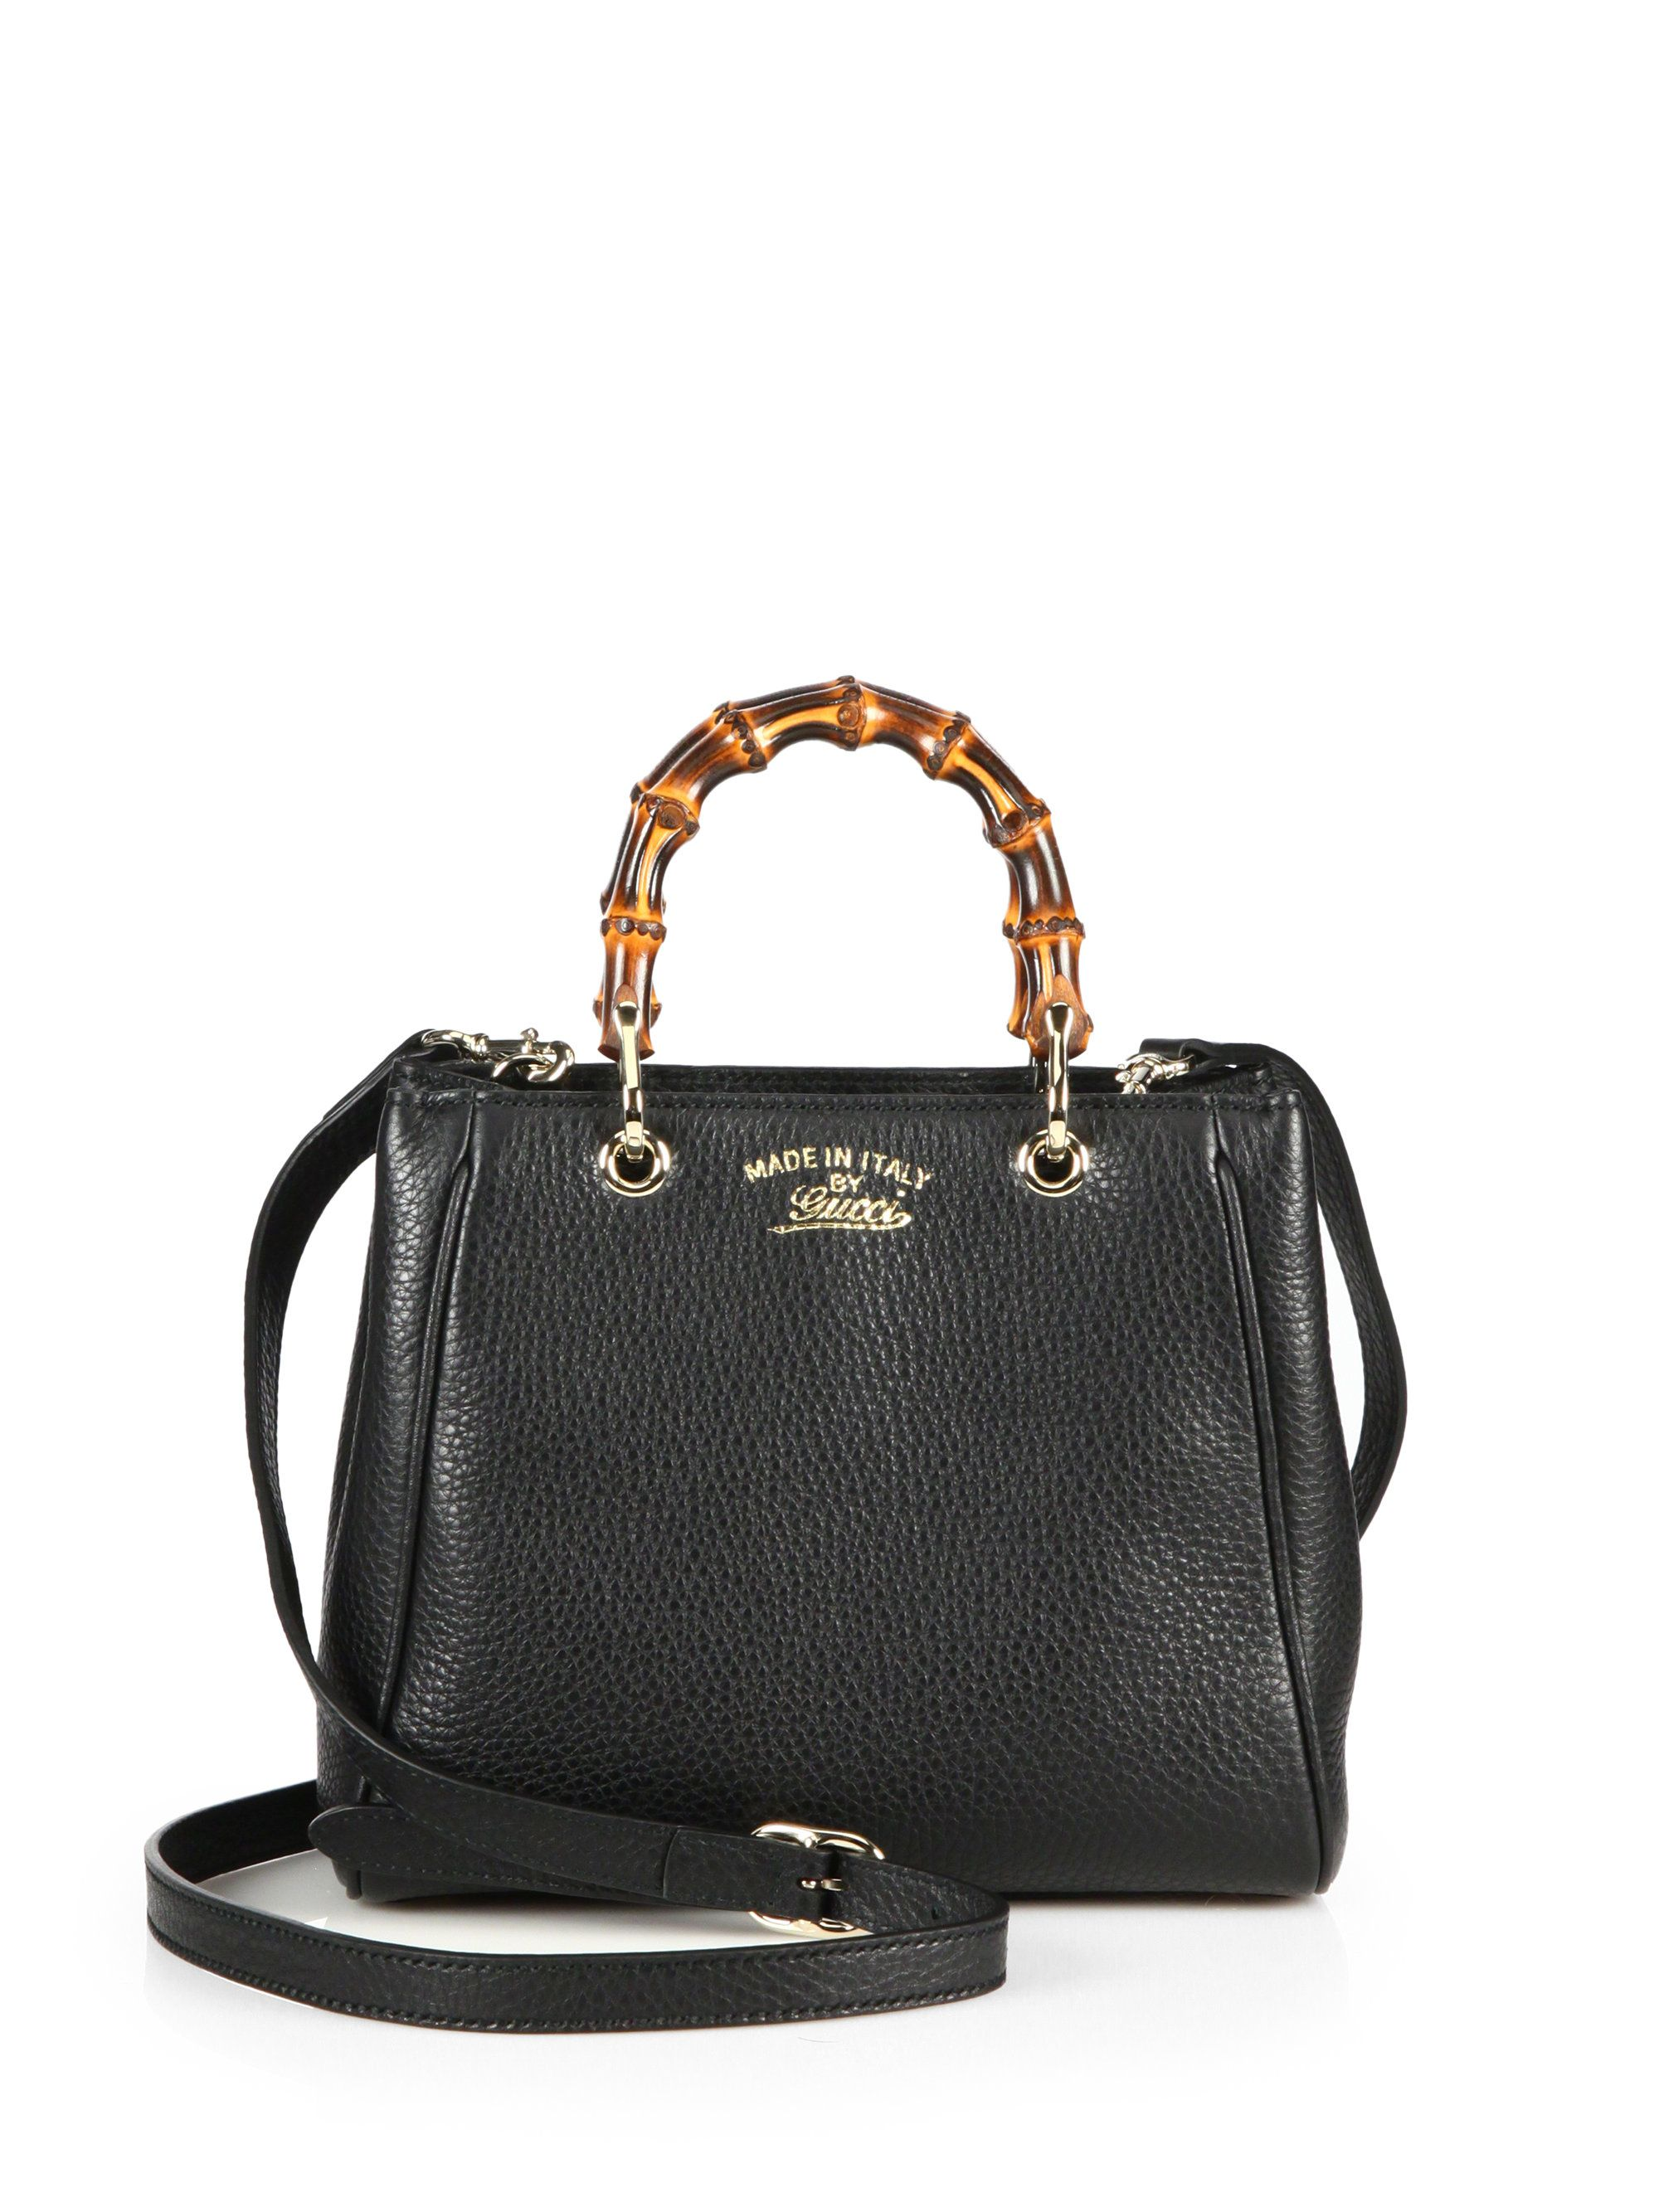 bde3f9e99a1e Gucci Bamboo Shopper Mini Leather Top Handle Bag in Black (NERO-BLACK) |  Lyst